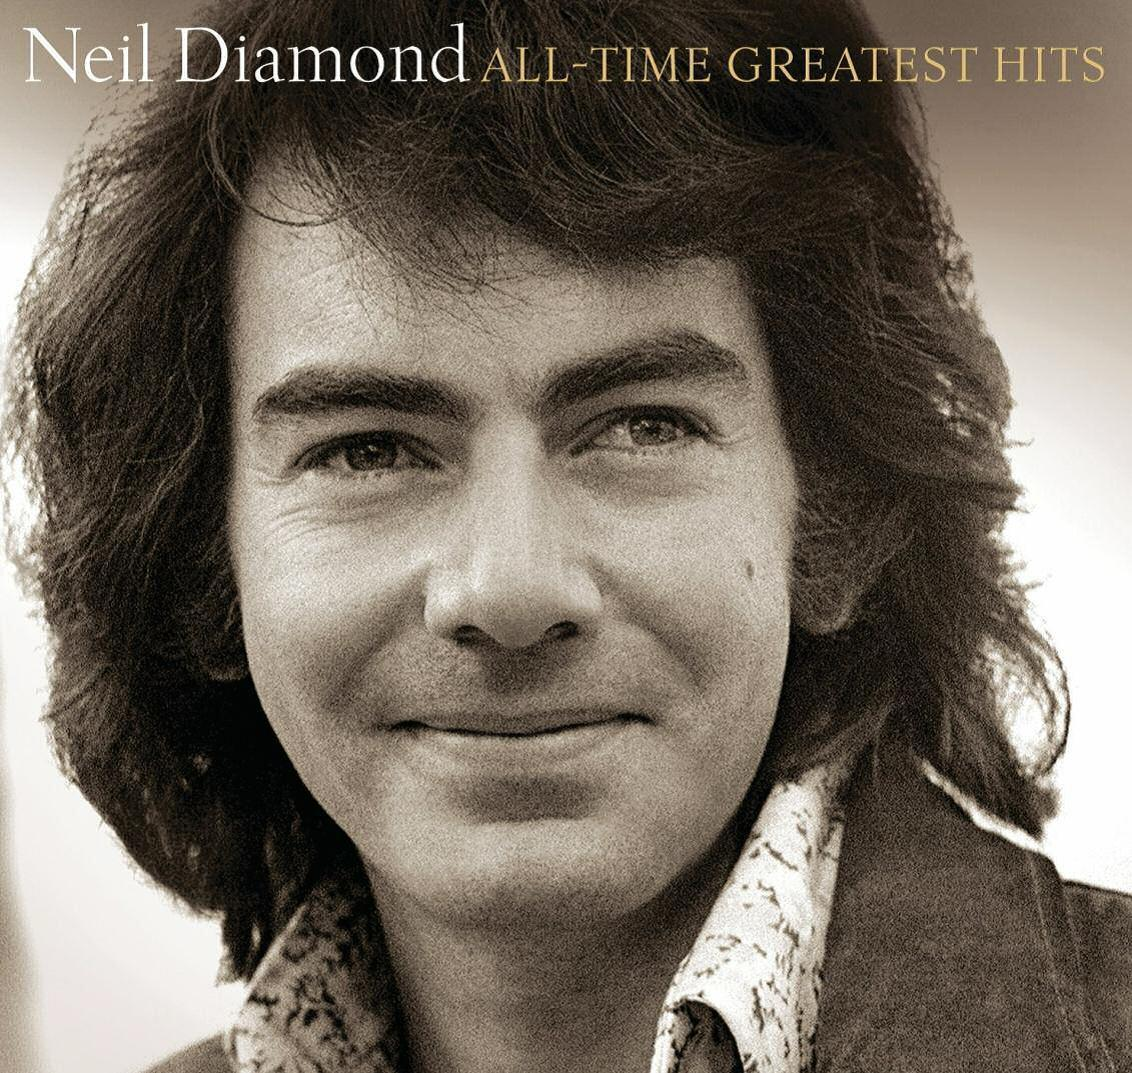 ALL-TIME GREATEST HITS - CD -